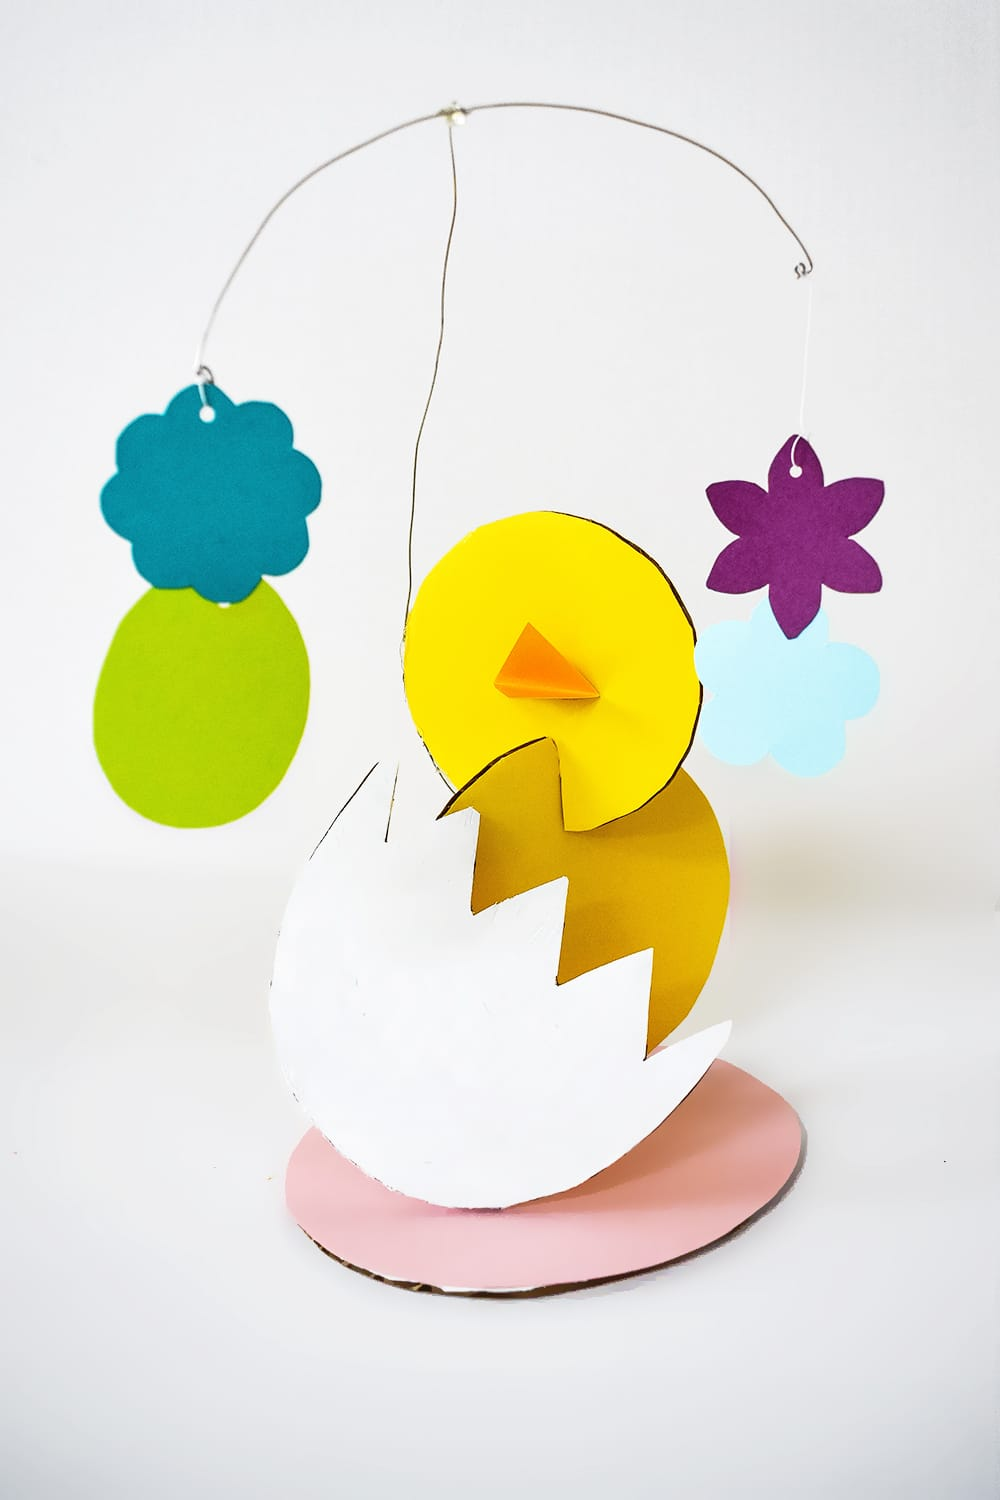 These fun cardboard spring sculptures inspired by Alexander Calder encourage kids to play with shape and form. They're a great recycled art project and STEAM activity! | via barley & birch